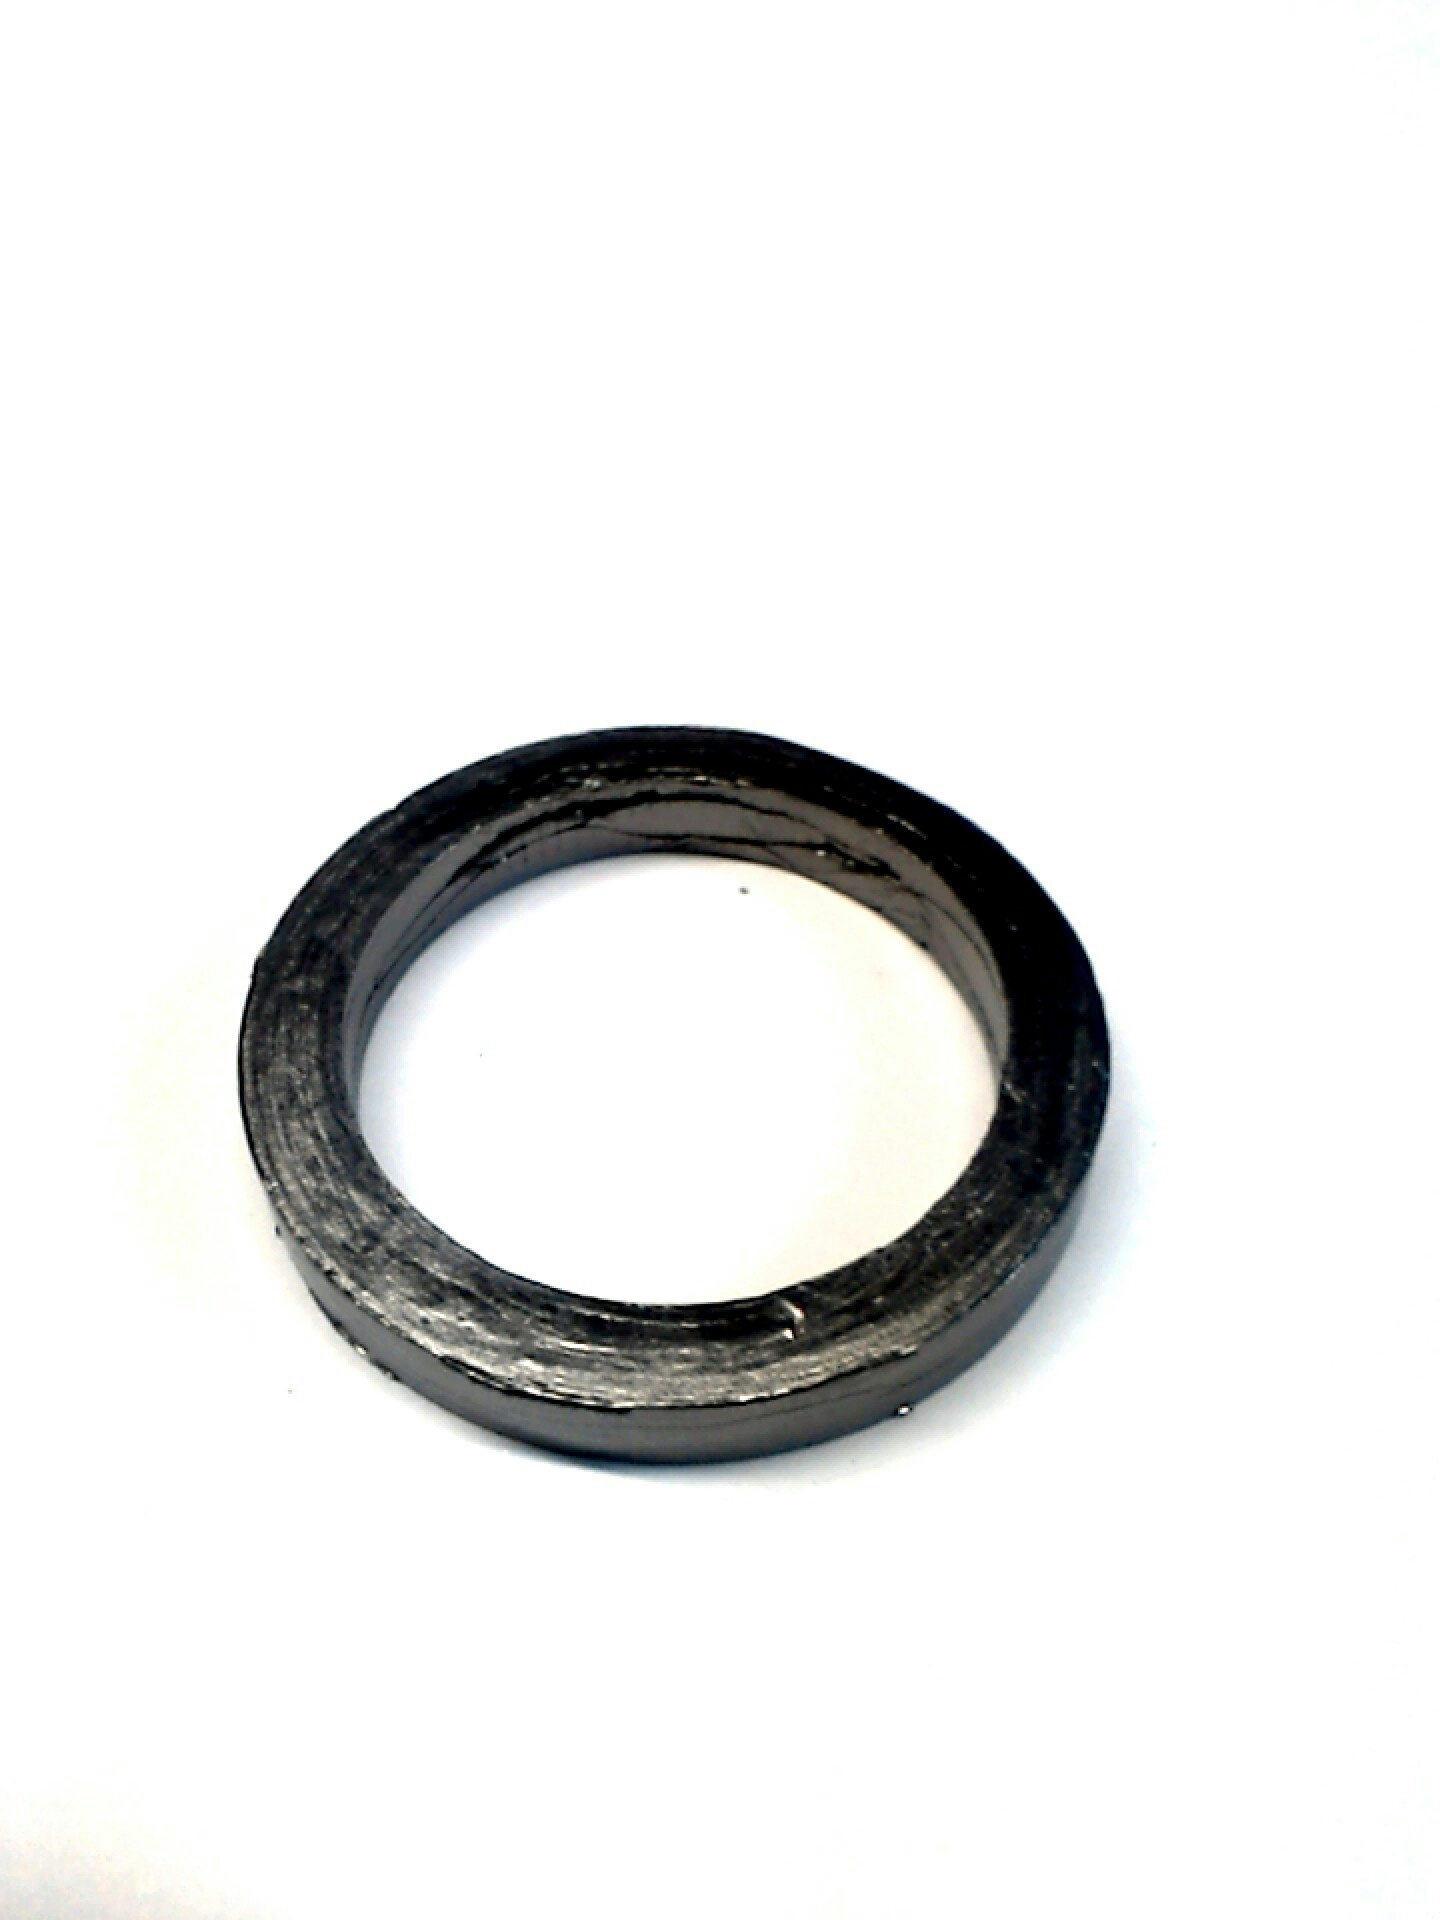 11627558906 Bmw Gasket Ring Bmw Cincinnati Oh